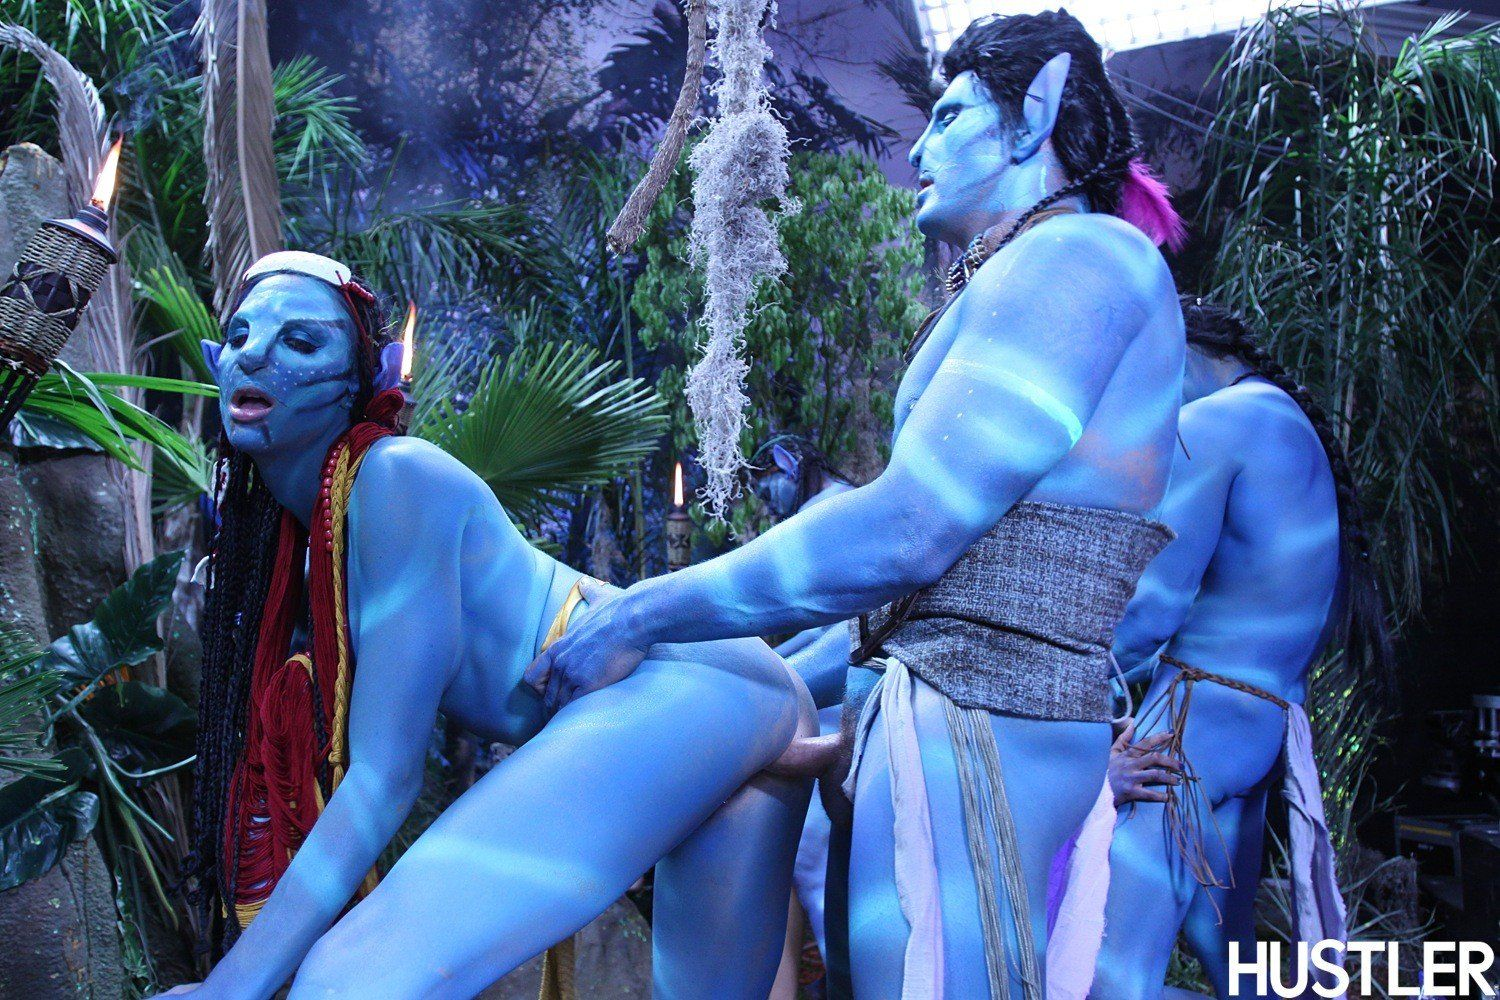 Avatar porno parody photos and other